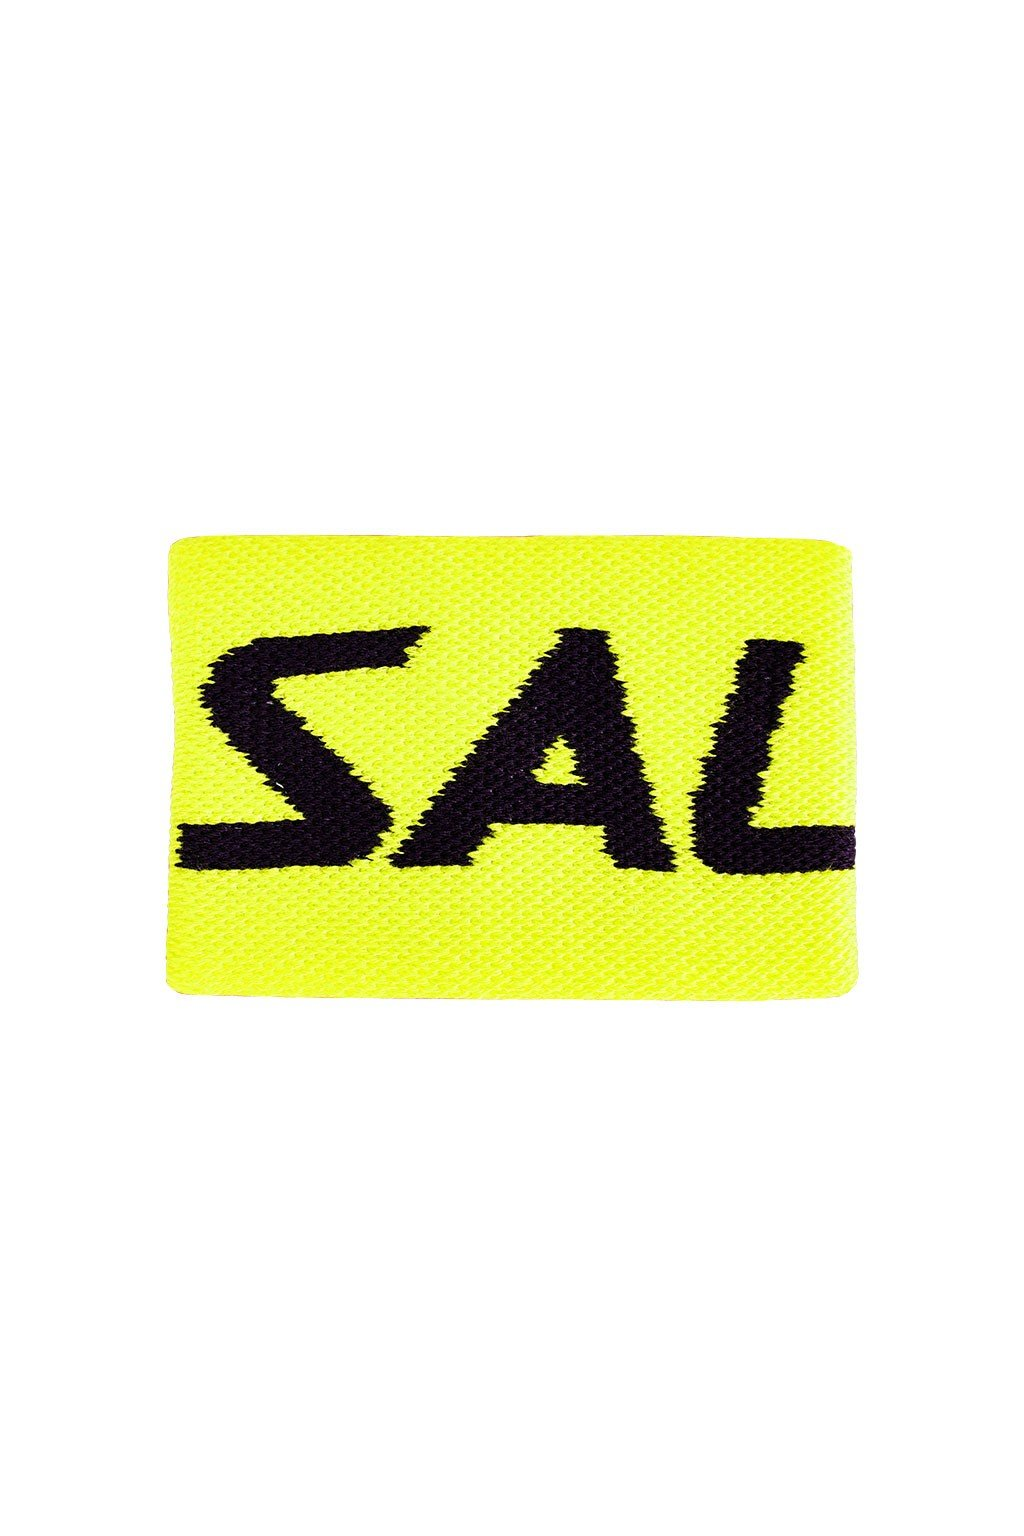 salming wristband mid yellow black